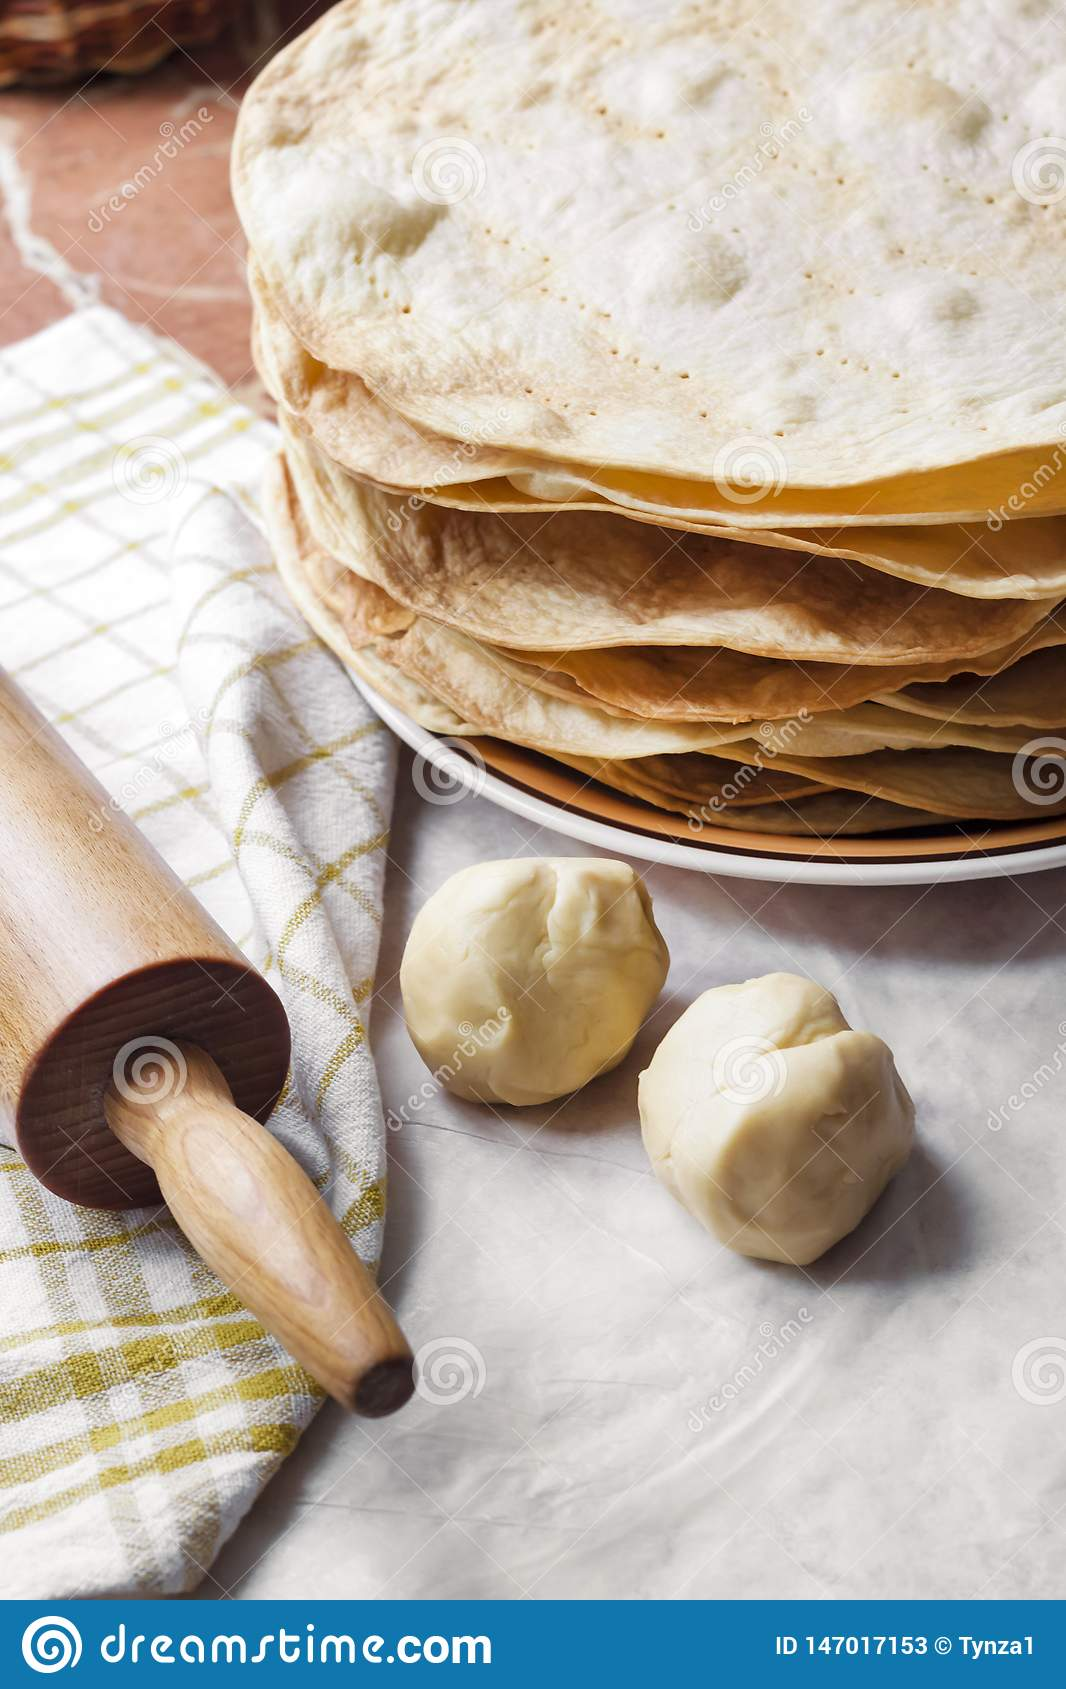 Cooking Cake Napoleon Baked Cake Layers Raw Dough And Rolling Pin Stock Image Image Of Delicious Homemade 147017153